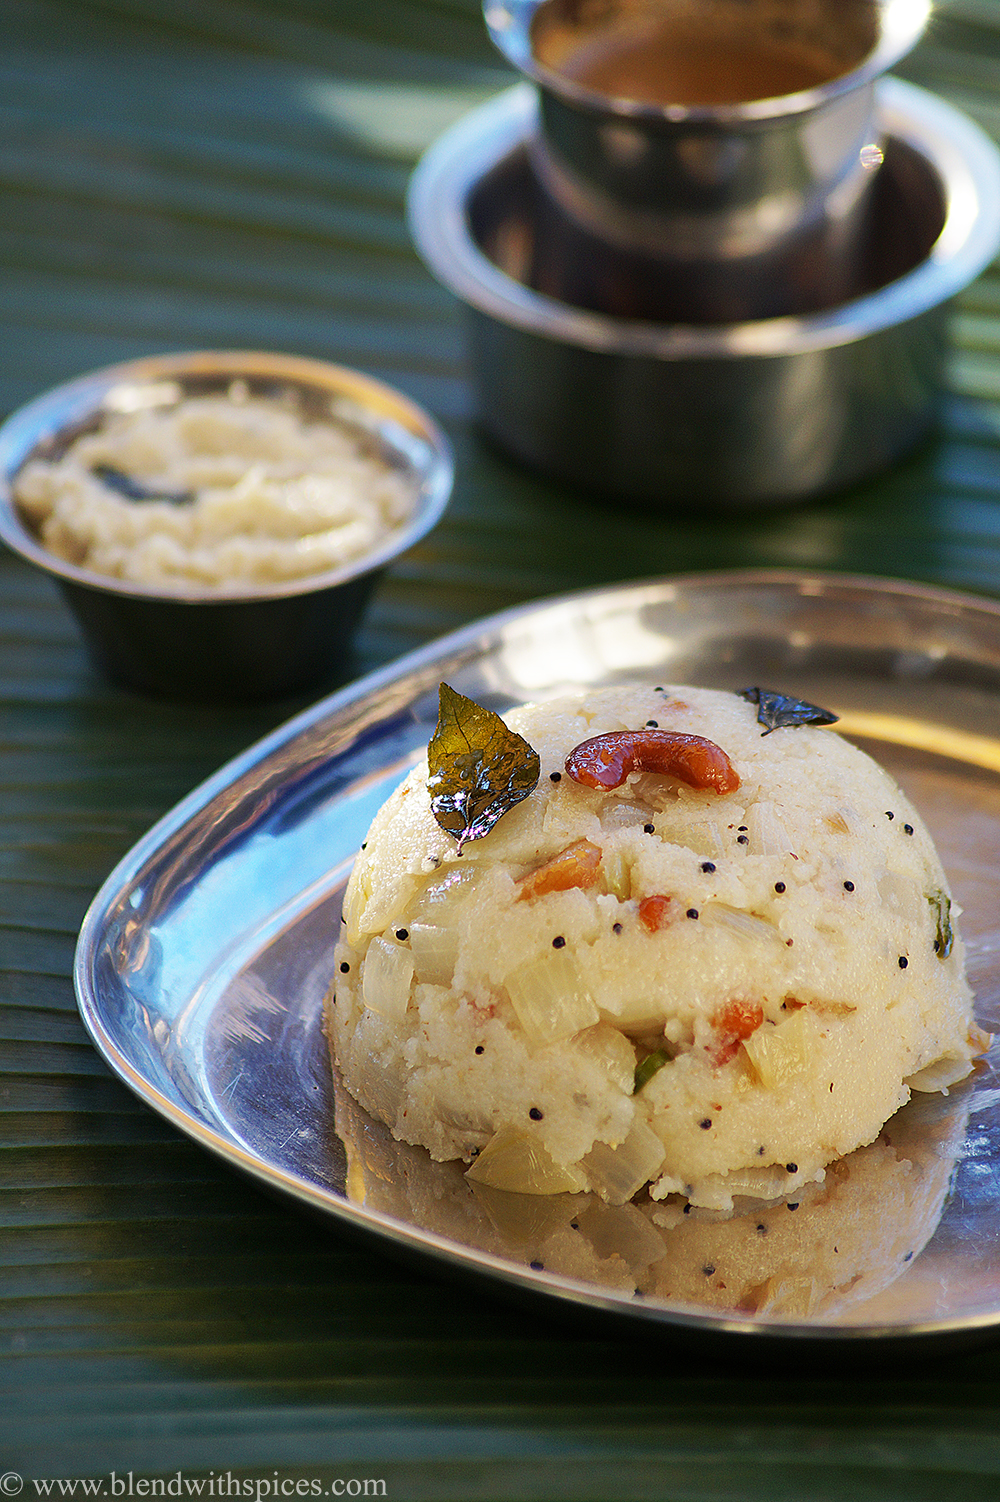 A plate of South Indian rava upma wth coconut chutney and filter coffee